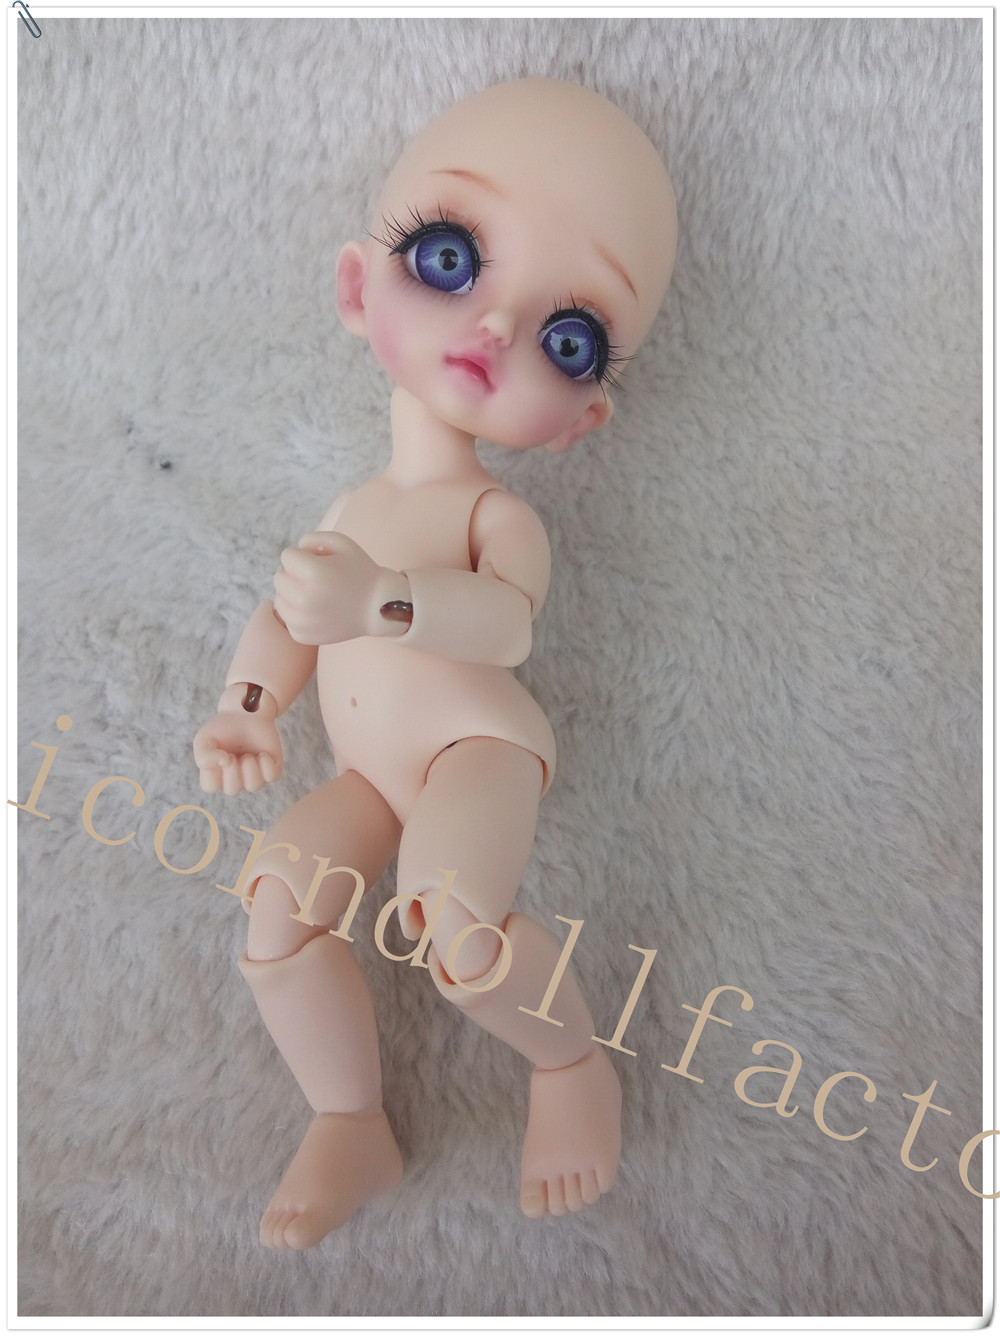 stenzhornBJD doll 1 8 doll human elf joint doll free eyes